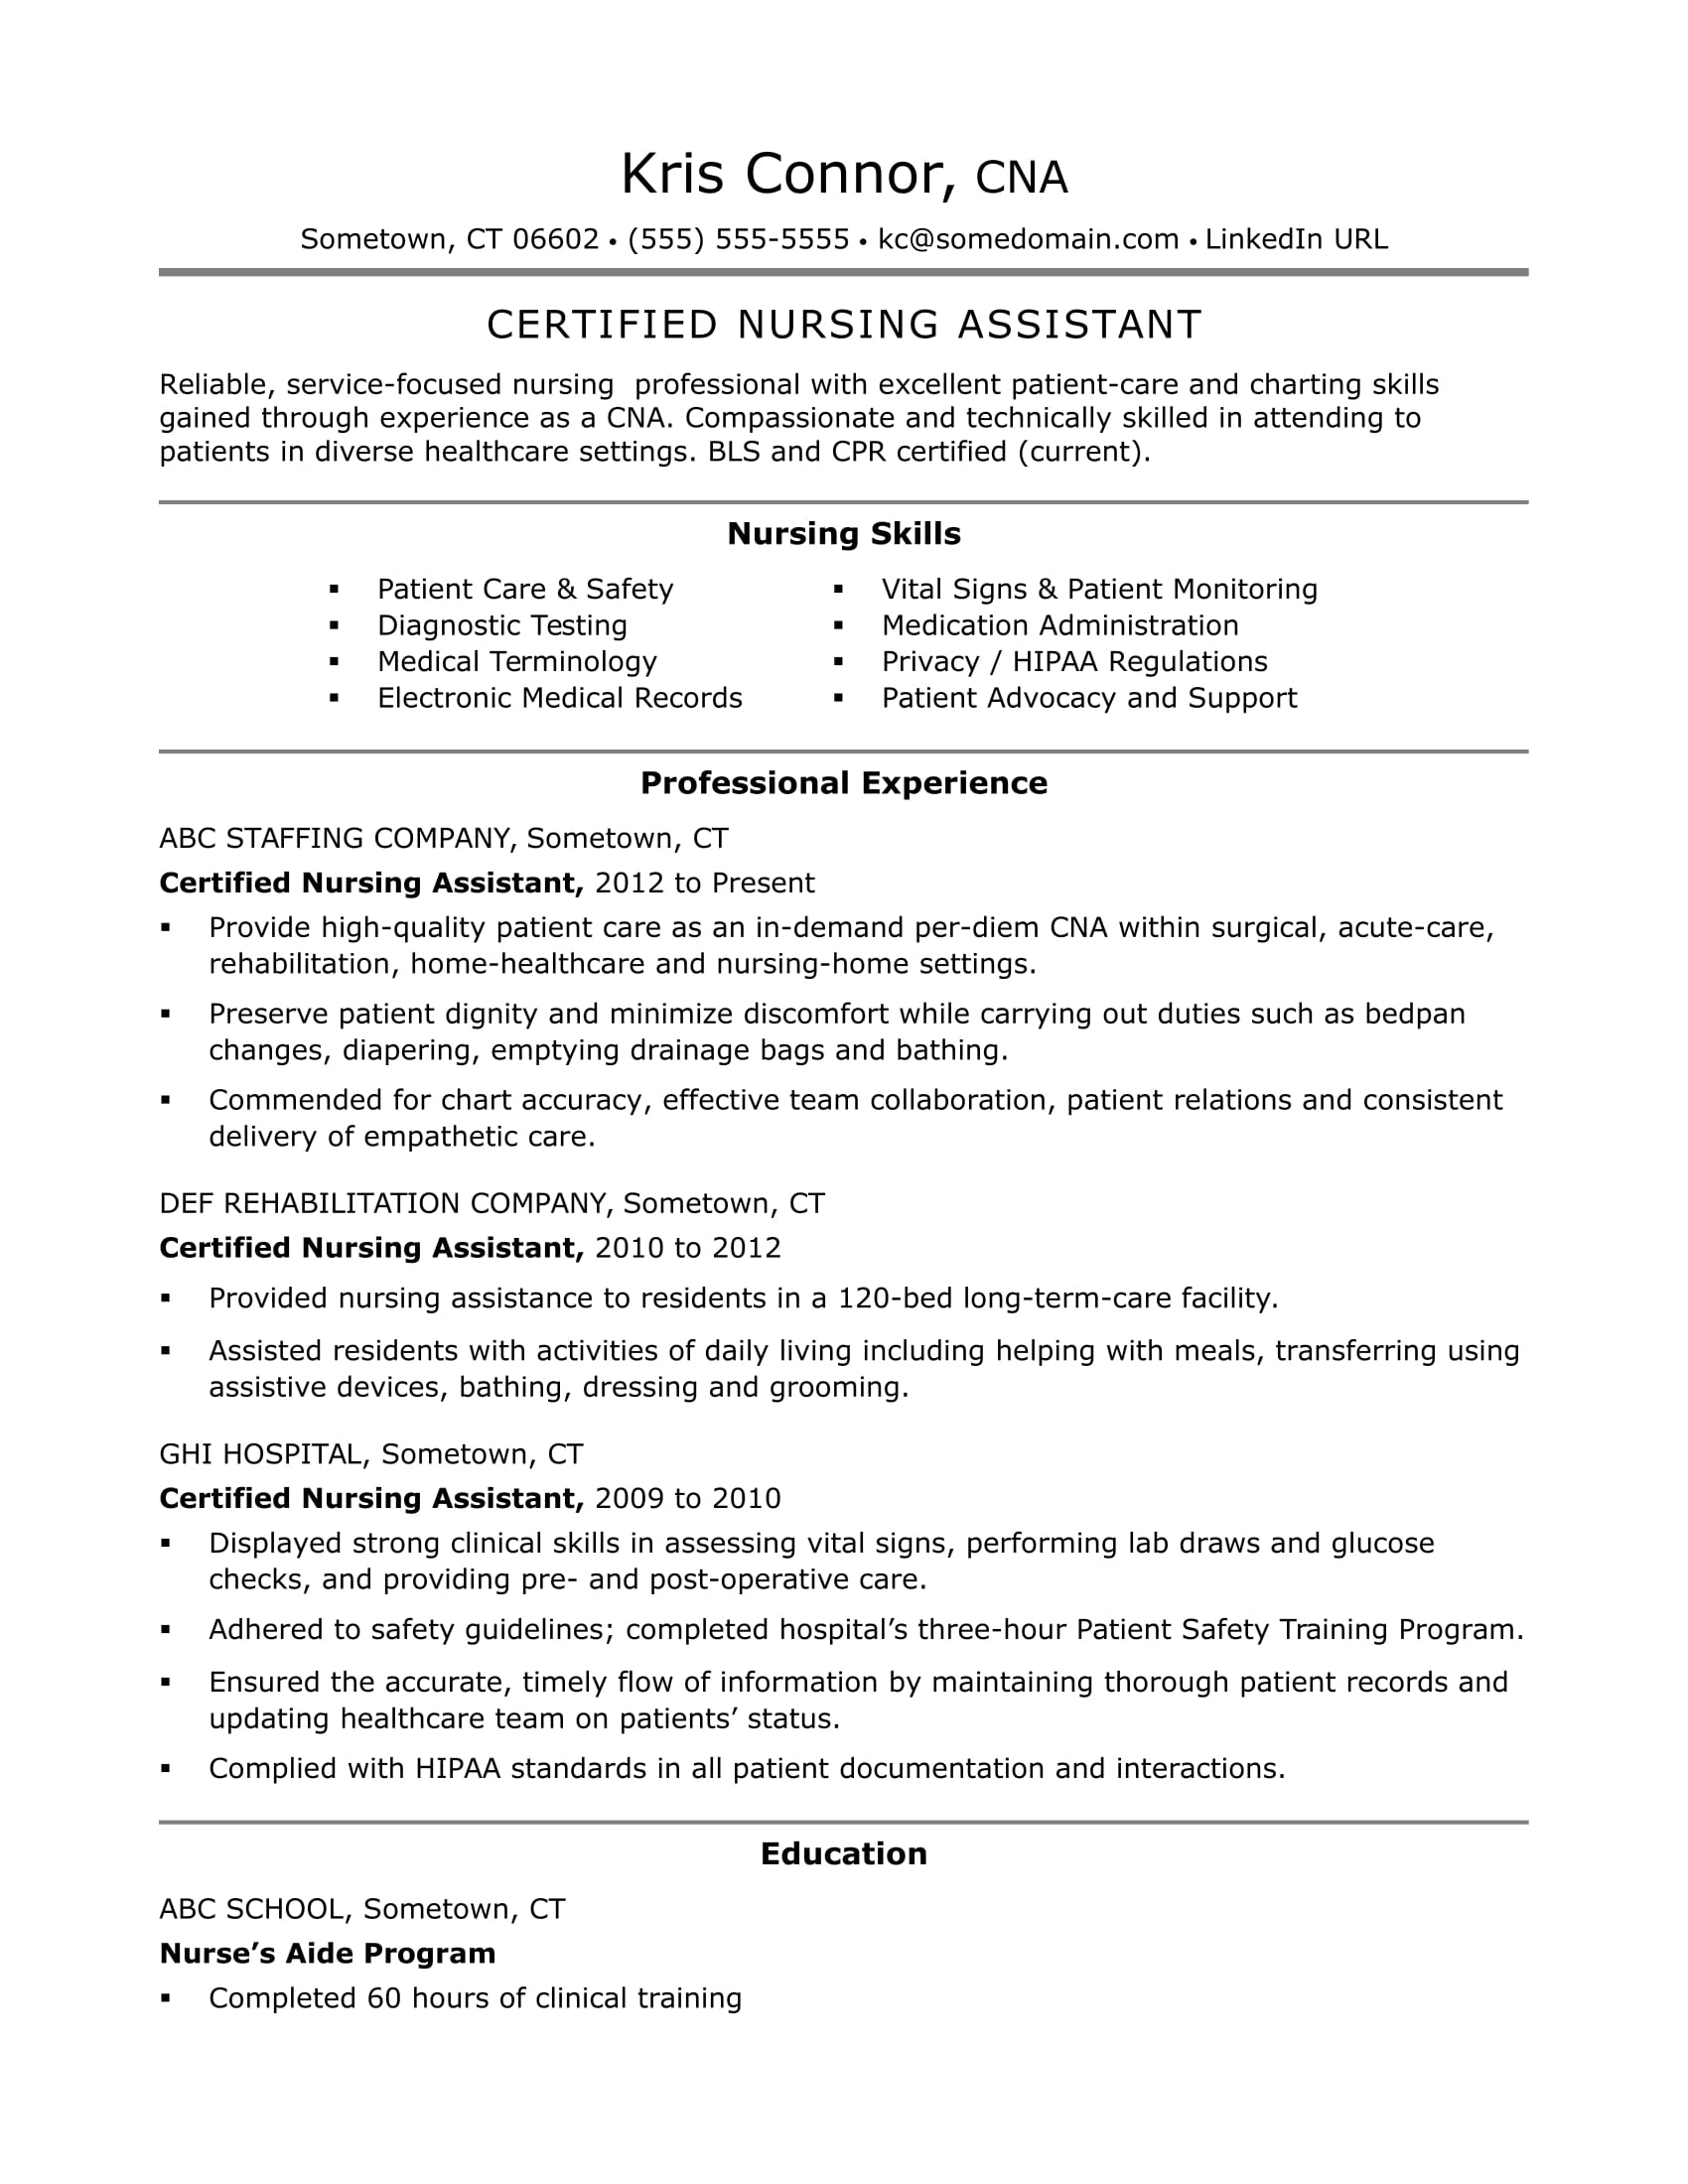 Cna Resume Samples Cna Resume Examples Skills For Cnas Monster